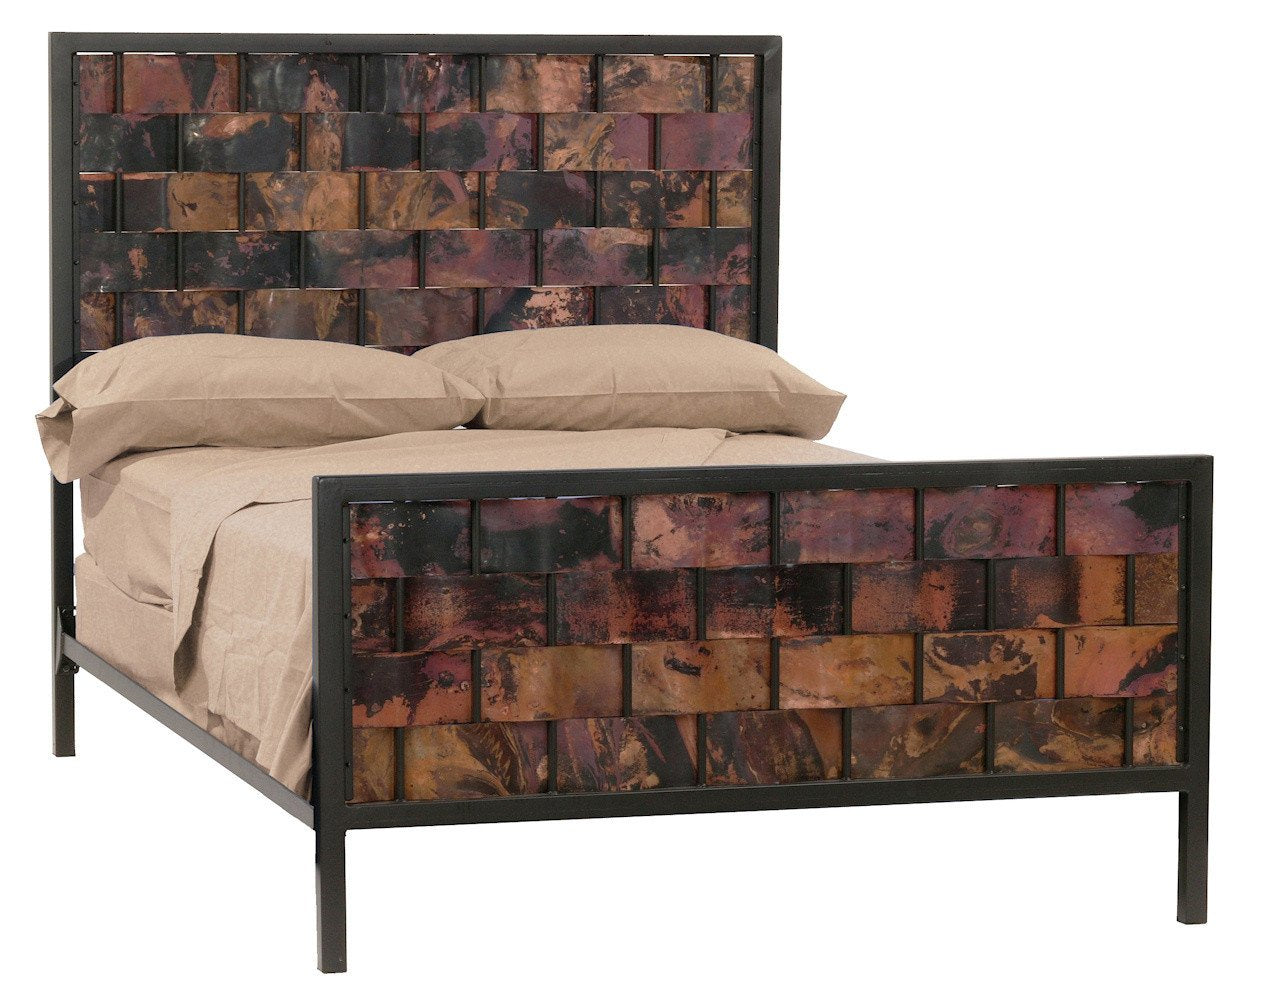 Stone County Twin Bed Copper Rushton